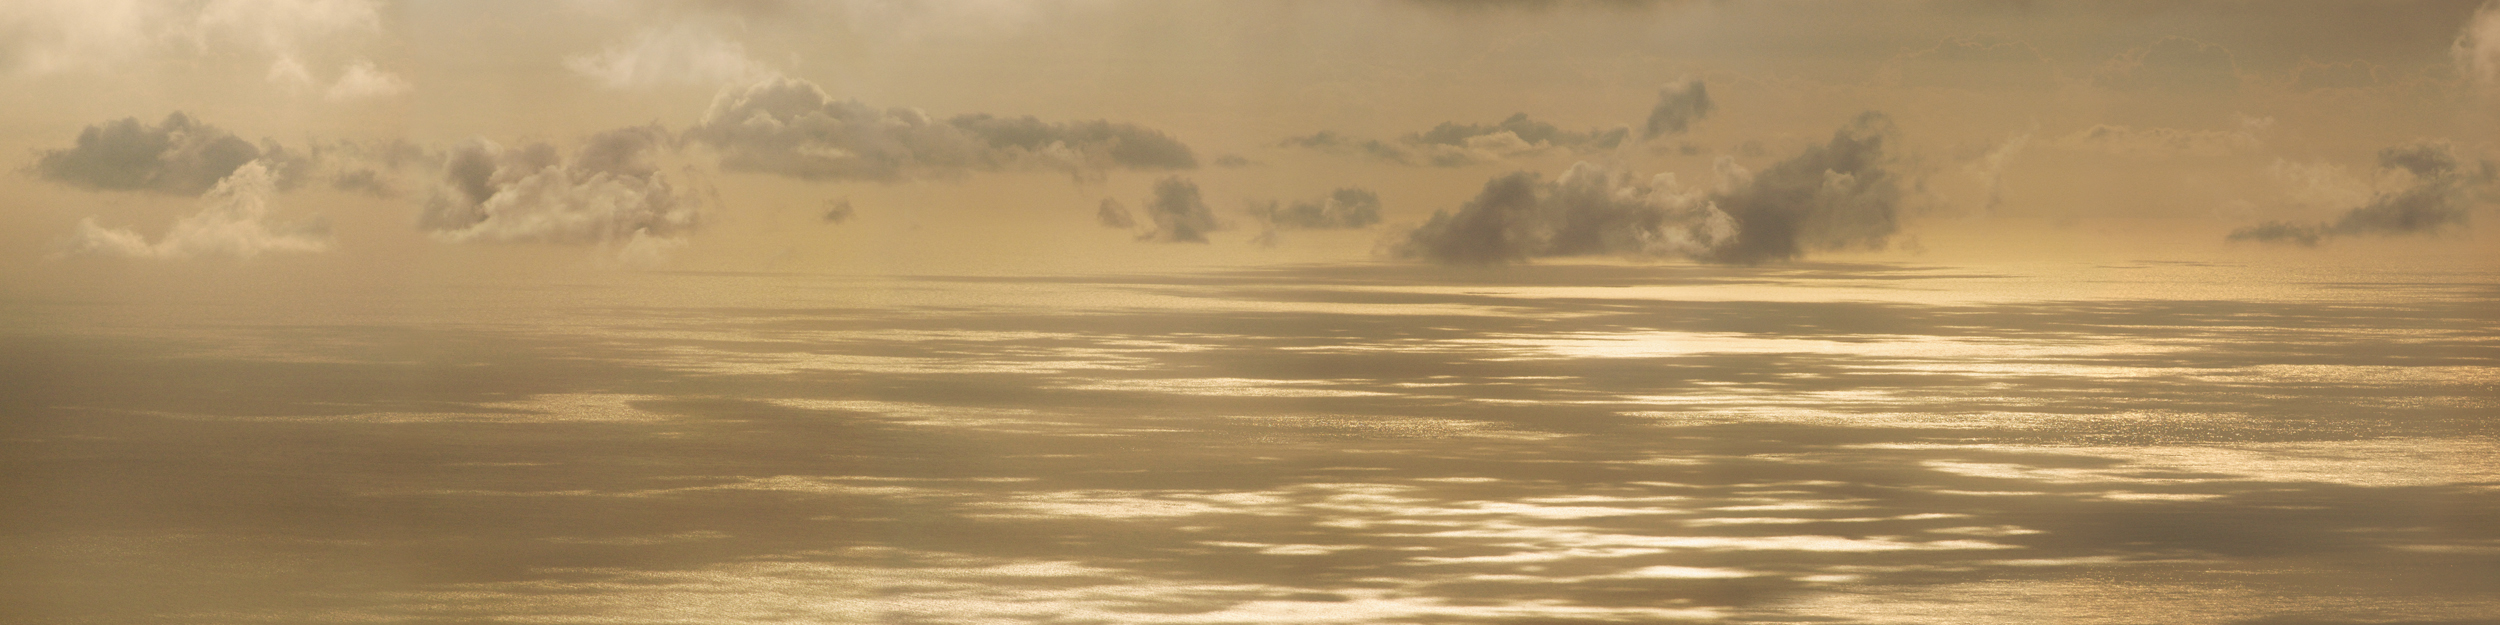 08_reflets-nuages-R